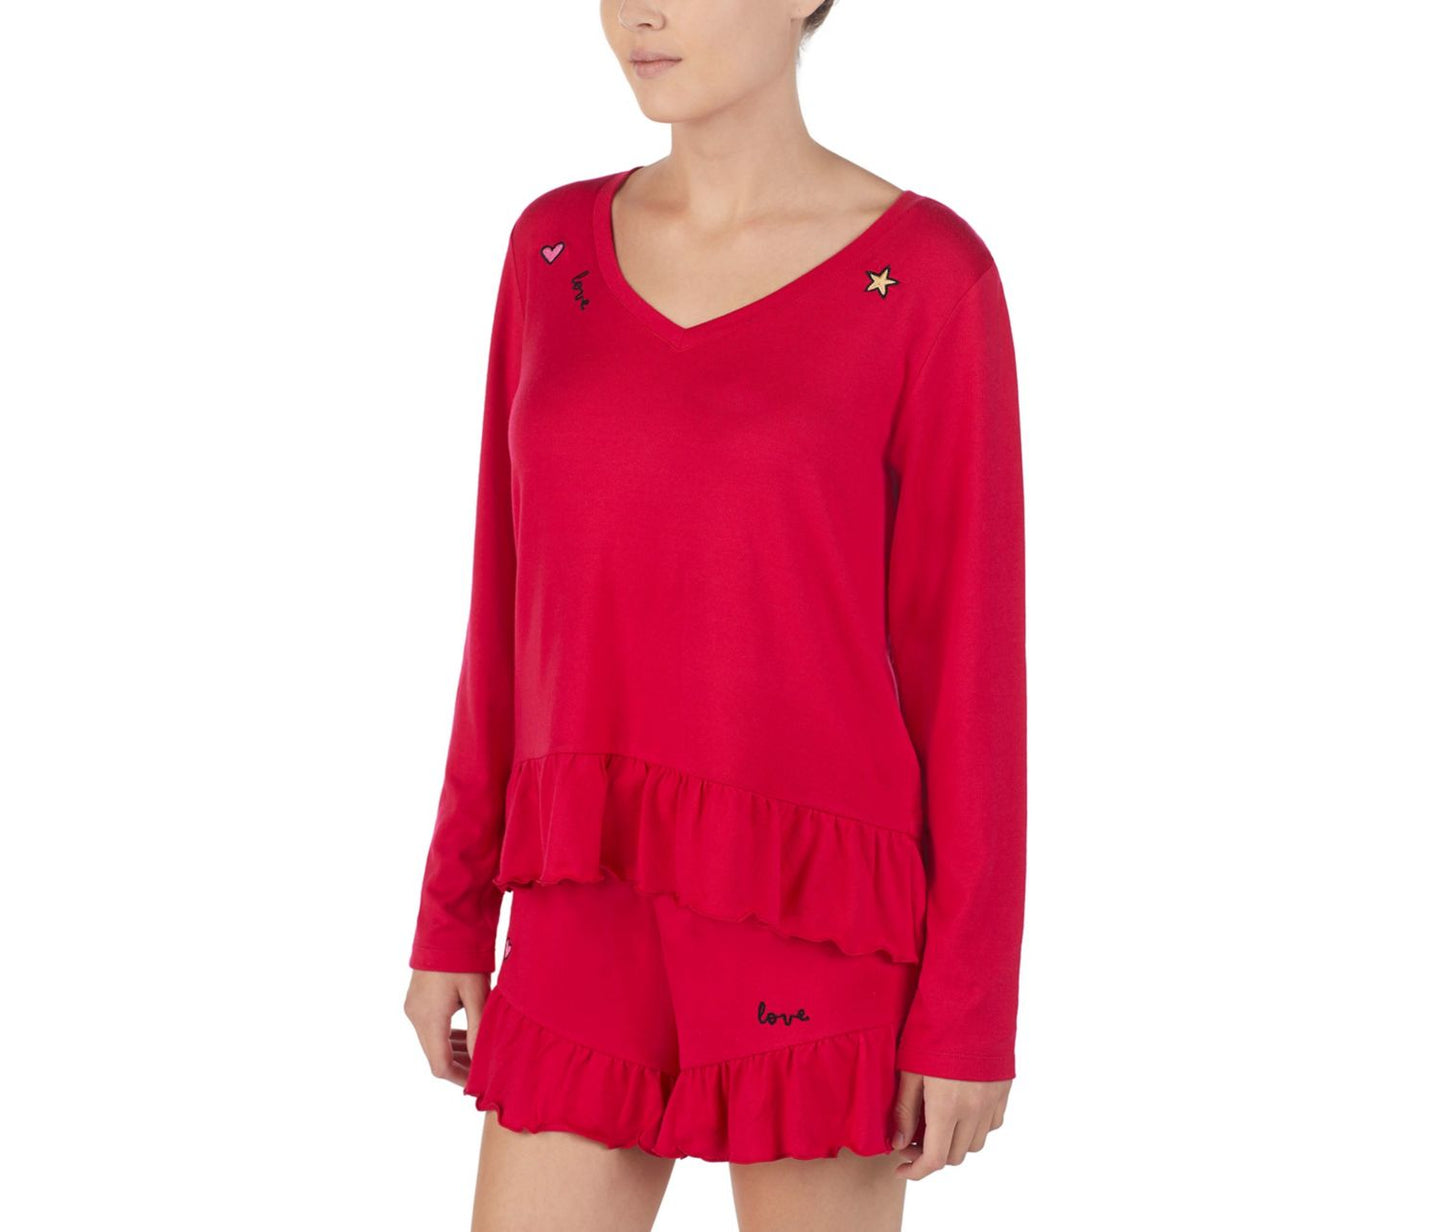 ICONS AND LOVE TOP RED - APPAREL - Betsey Johnson